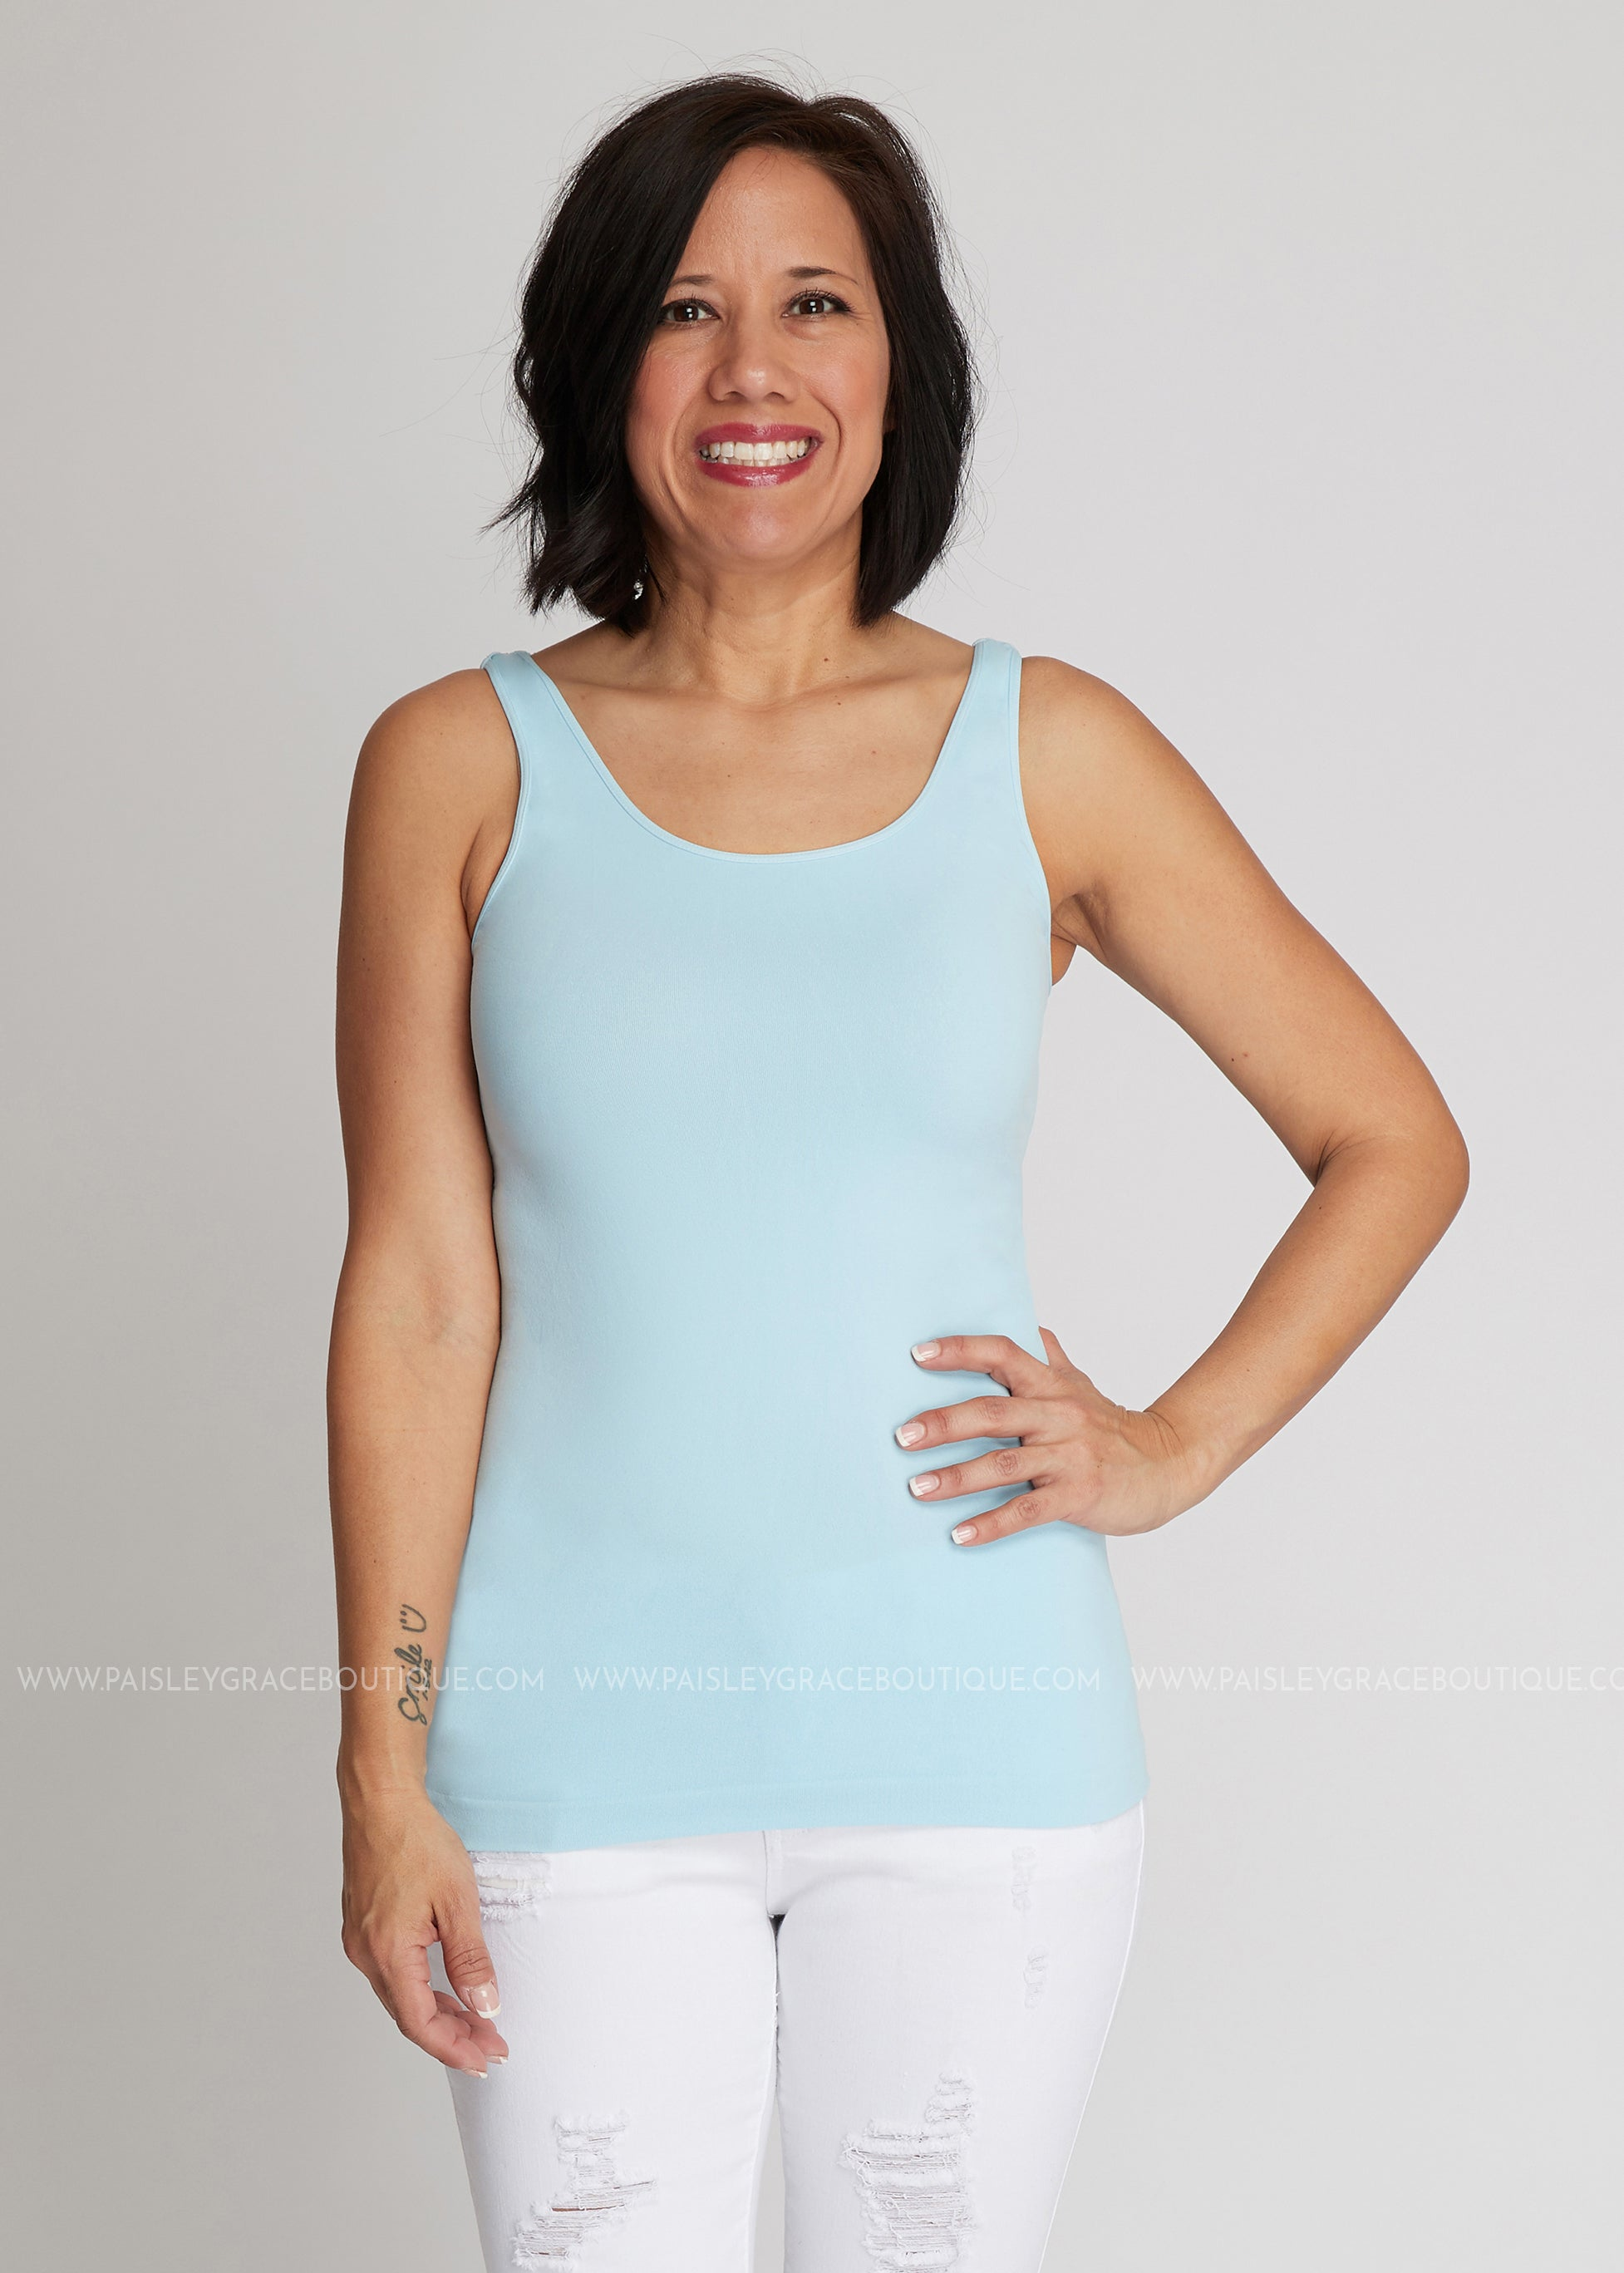 Luxe Wide Strap Tank Top/Cami - SKY BLUE (REG & PLUS)-RESTOCK